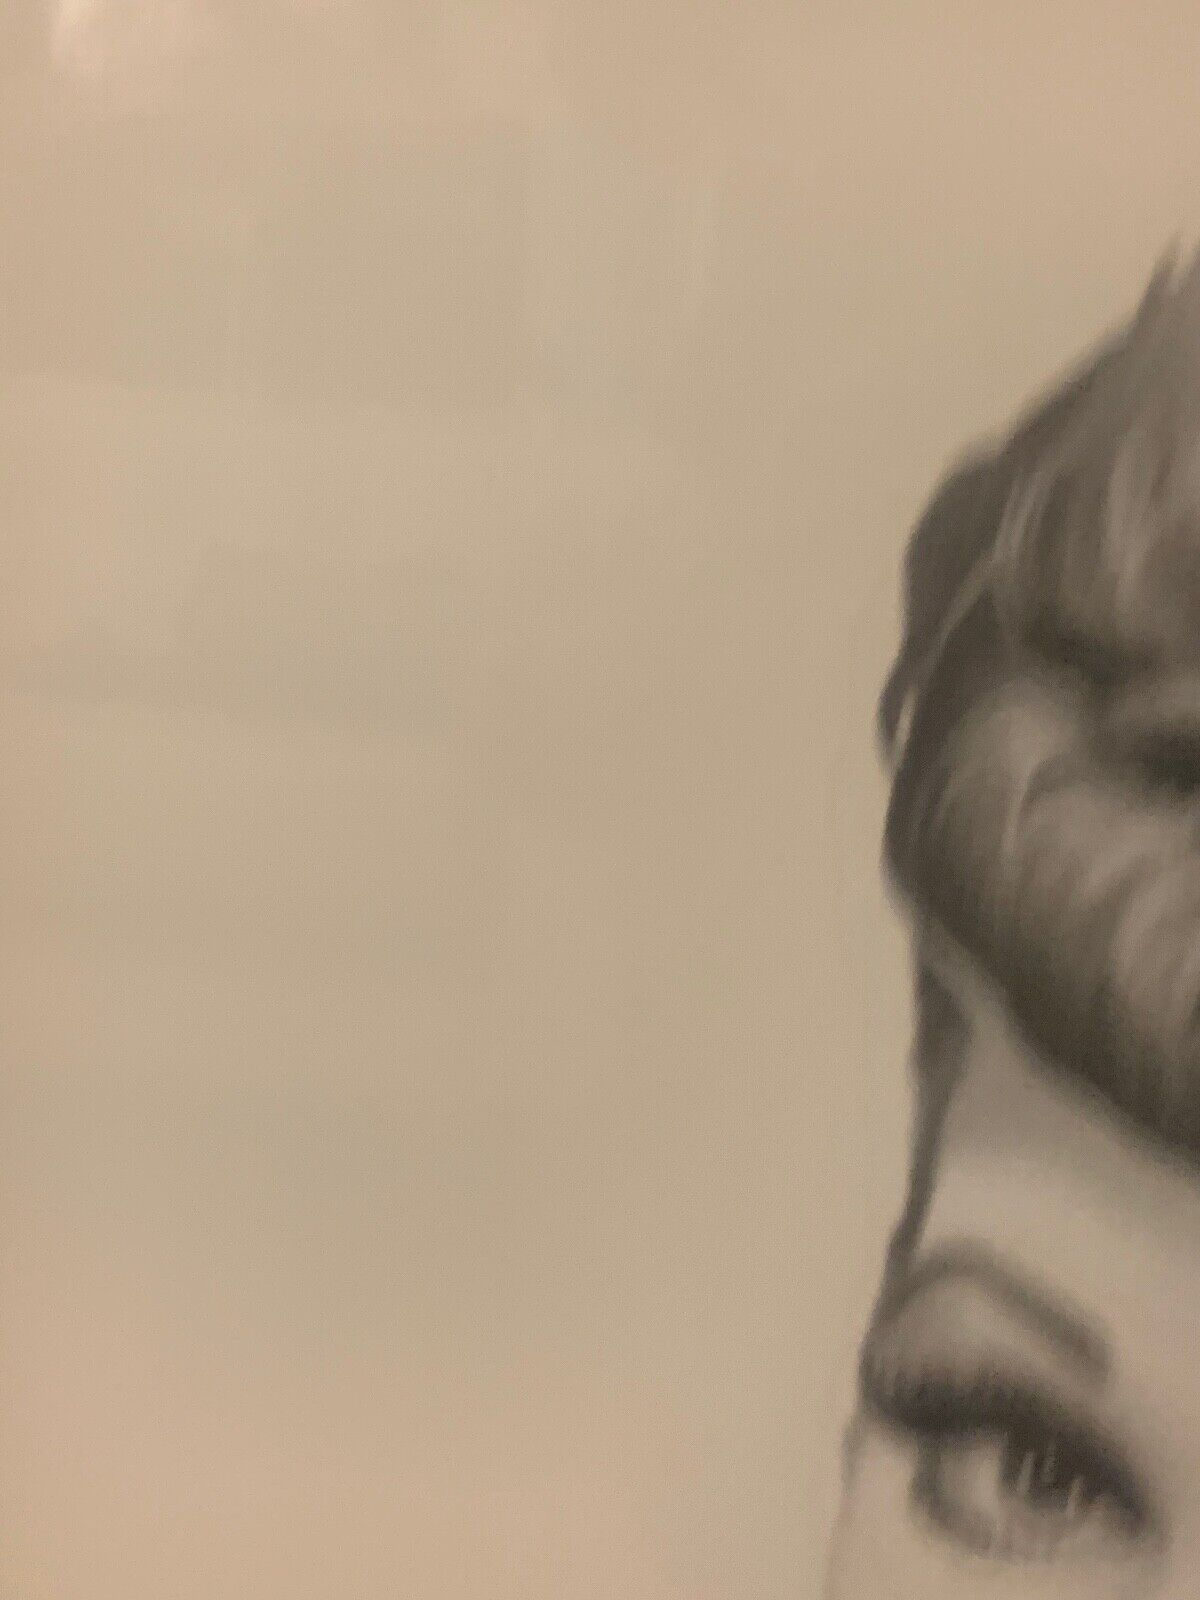 Lithograph Drawing By Gary Sanderup Of Lucille Ball 24 X 20 Framed - $79.99